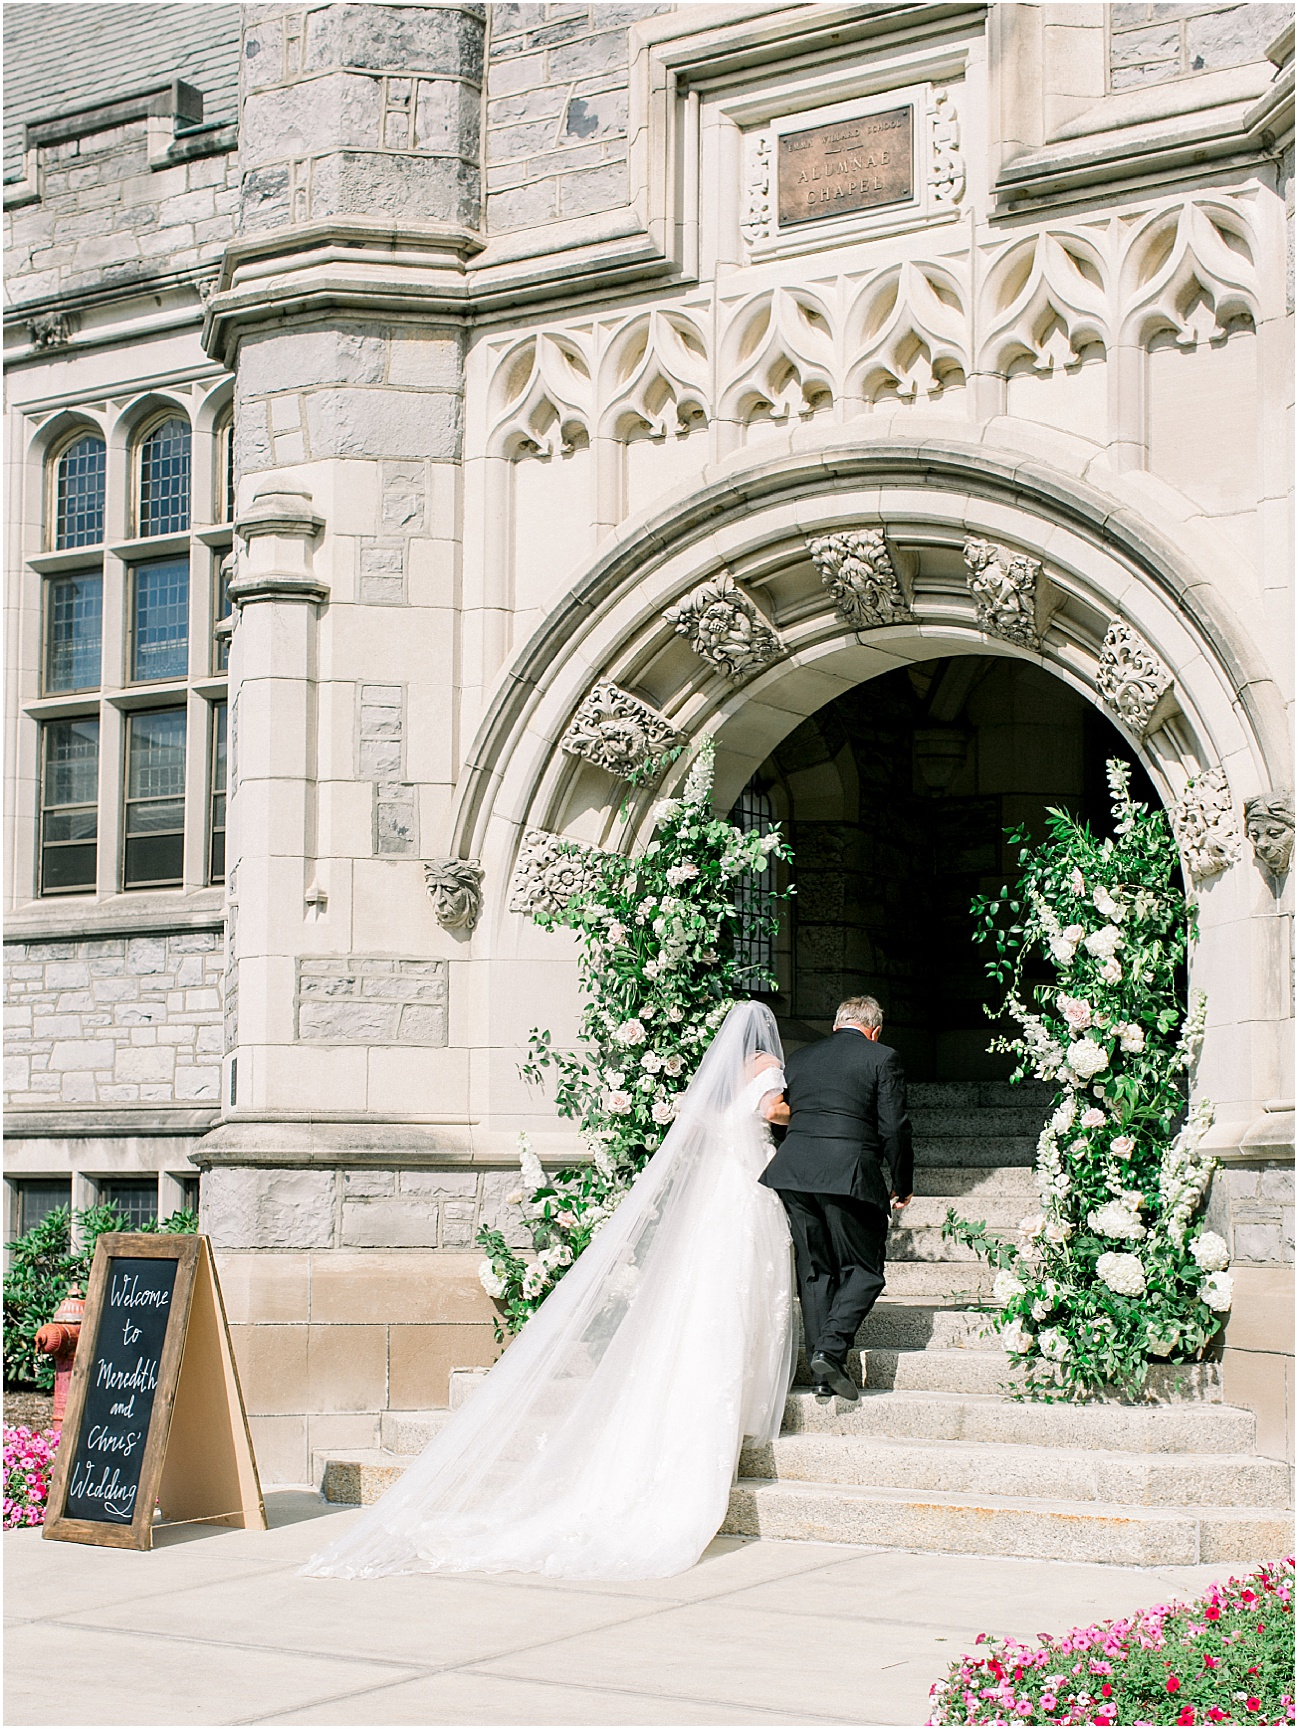 our_wedding_day_troy_NY_emma_willard_fairy_tale_royal_neutral_beauty_and_the_beast_moped_private_estate_cape_cod_boston_wedding_photographer_meredith_jane_photography_chris_kerr_photo_1975.jpg